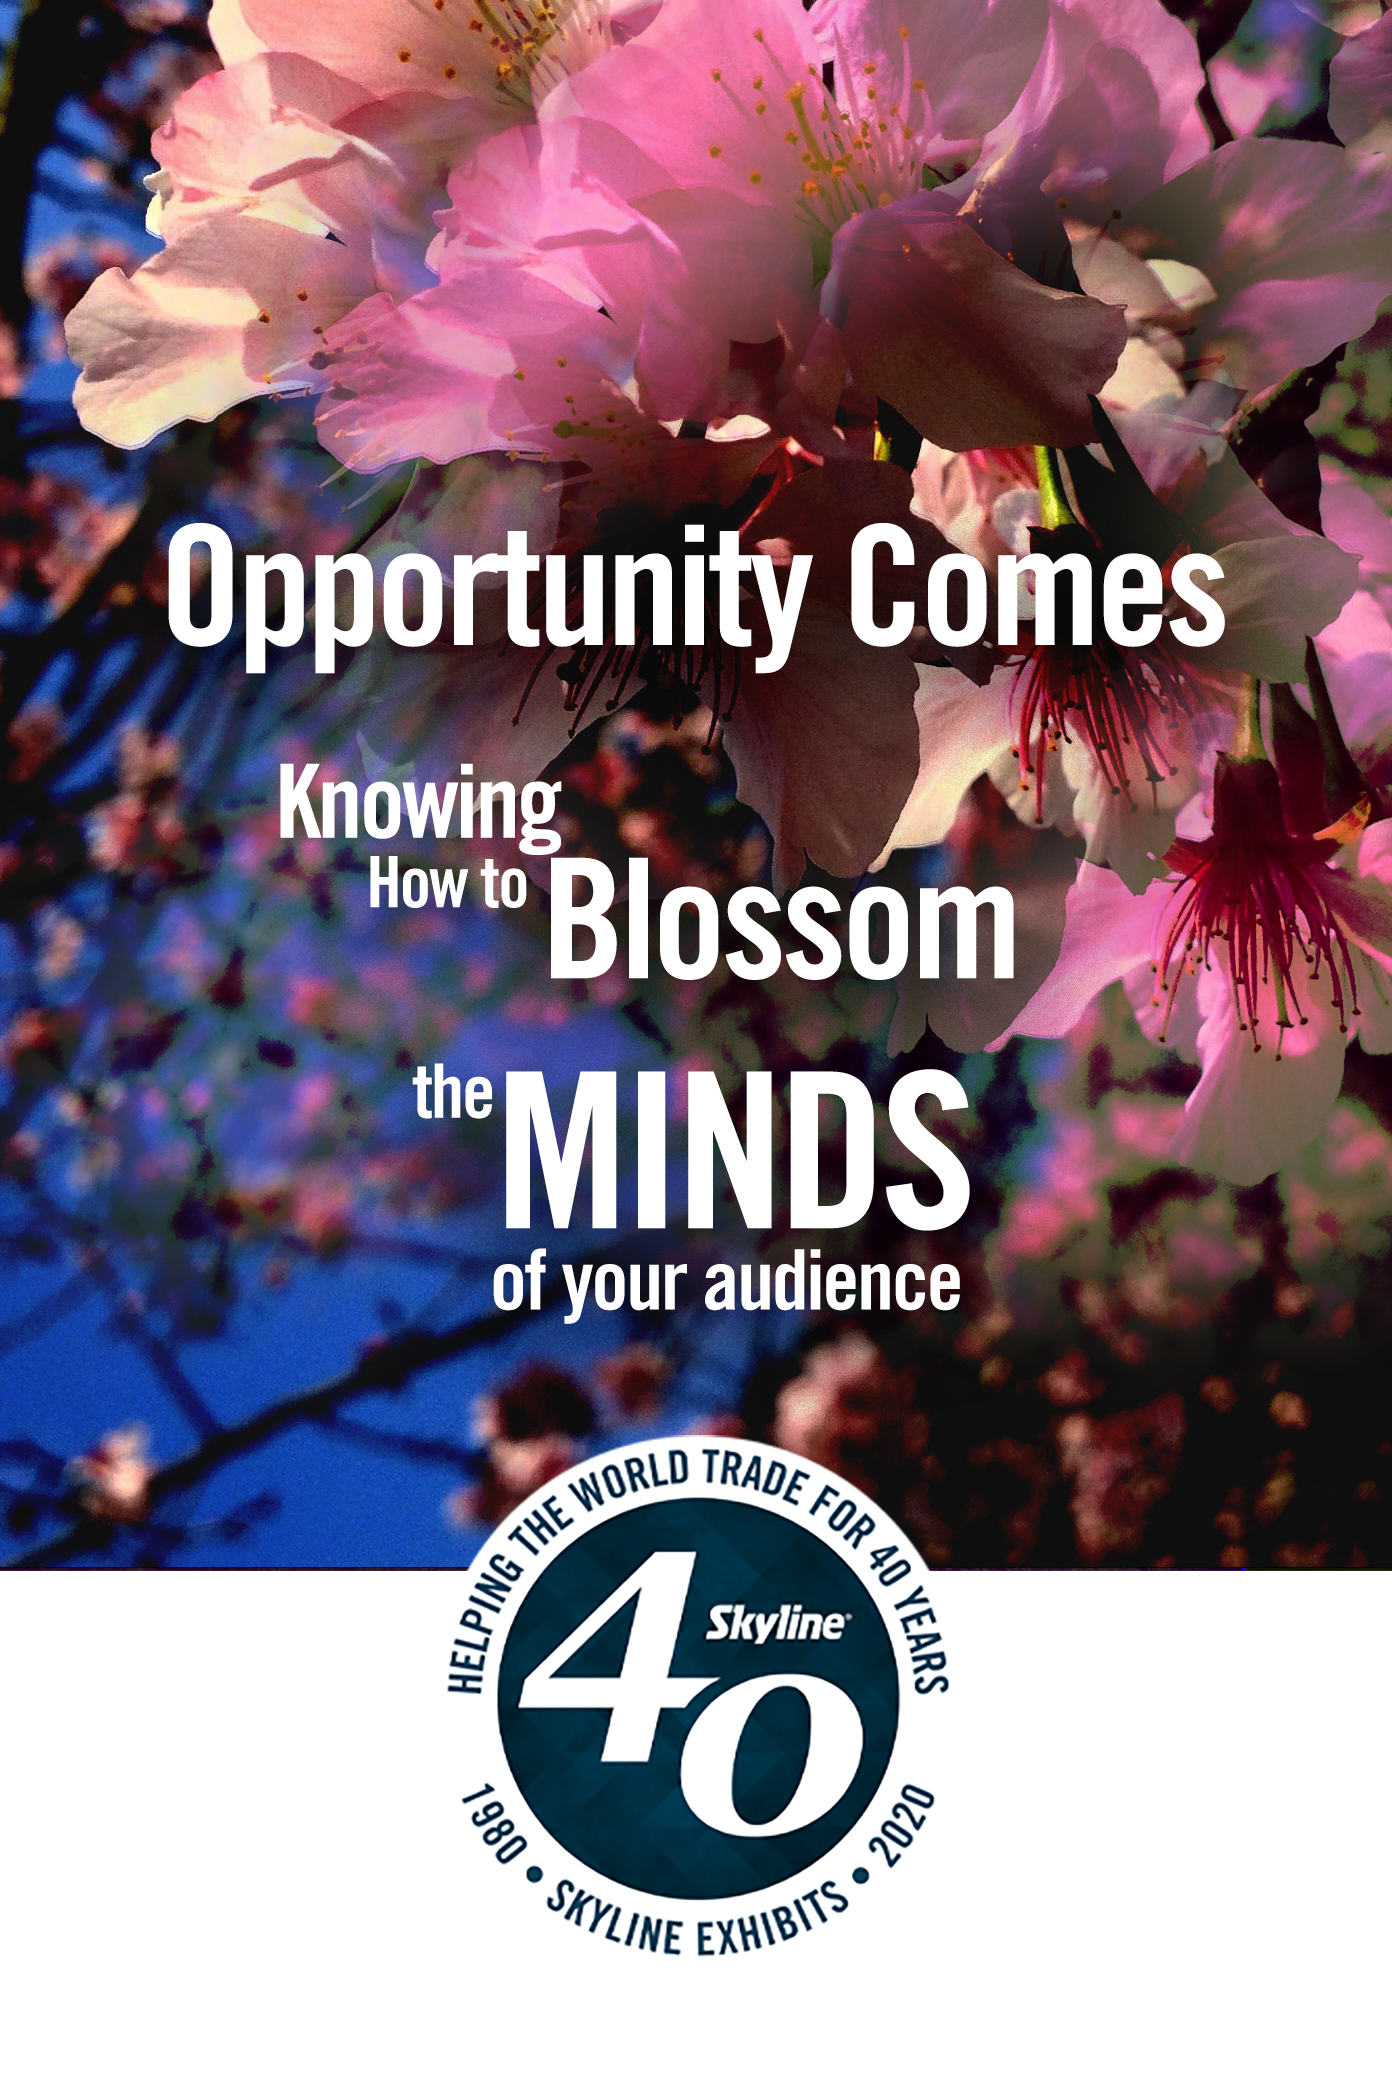 opportunity comes knowing how to blossom the minds of your audience